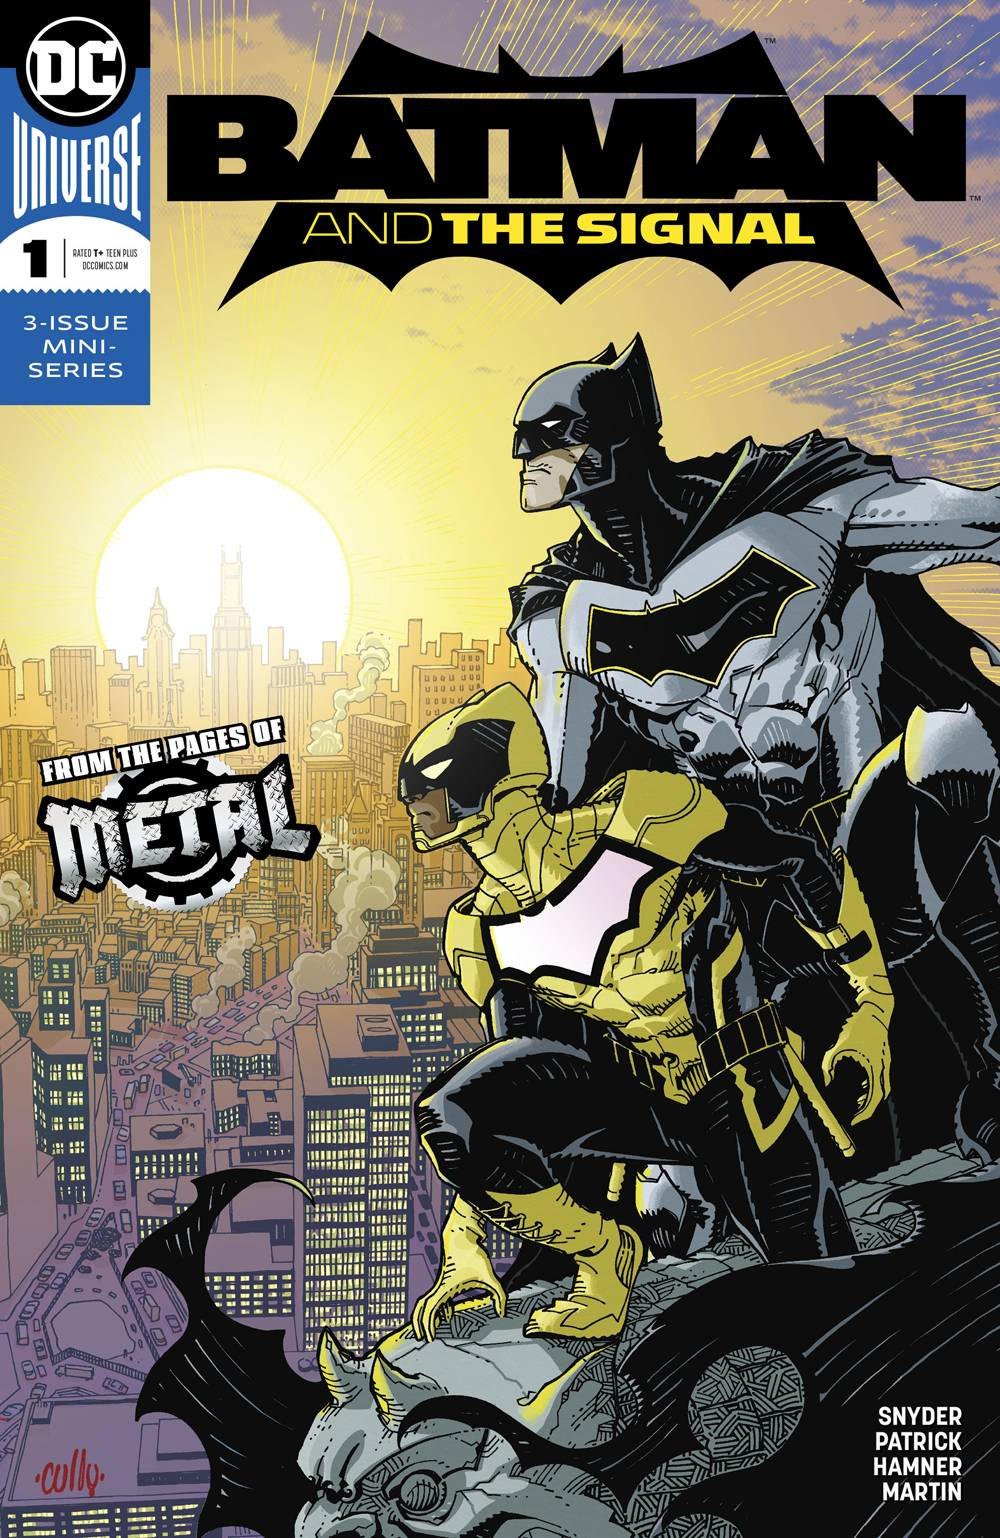 BATMAN AND THE SIGNAL #1-3 (DC 2017) COMPLETE SET